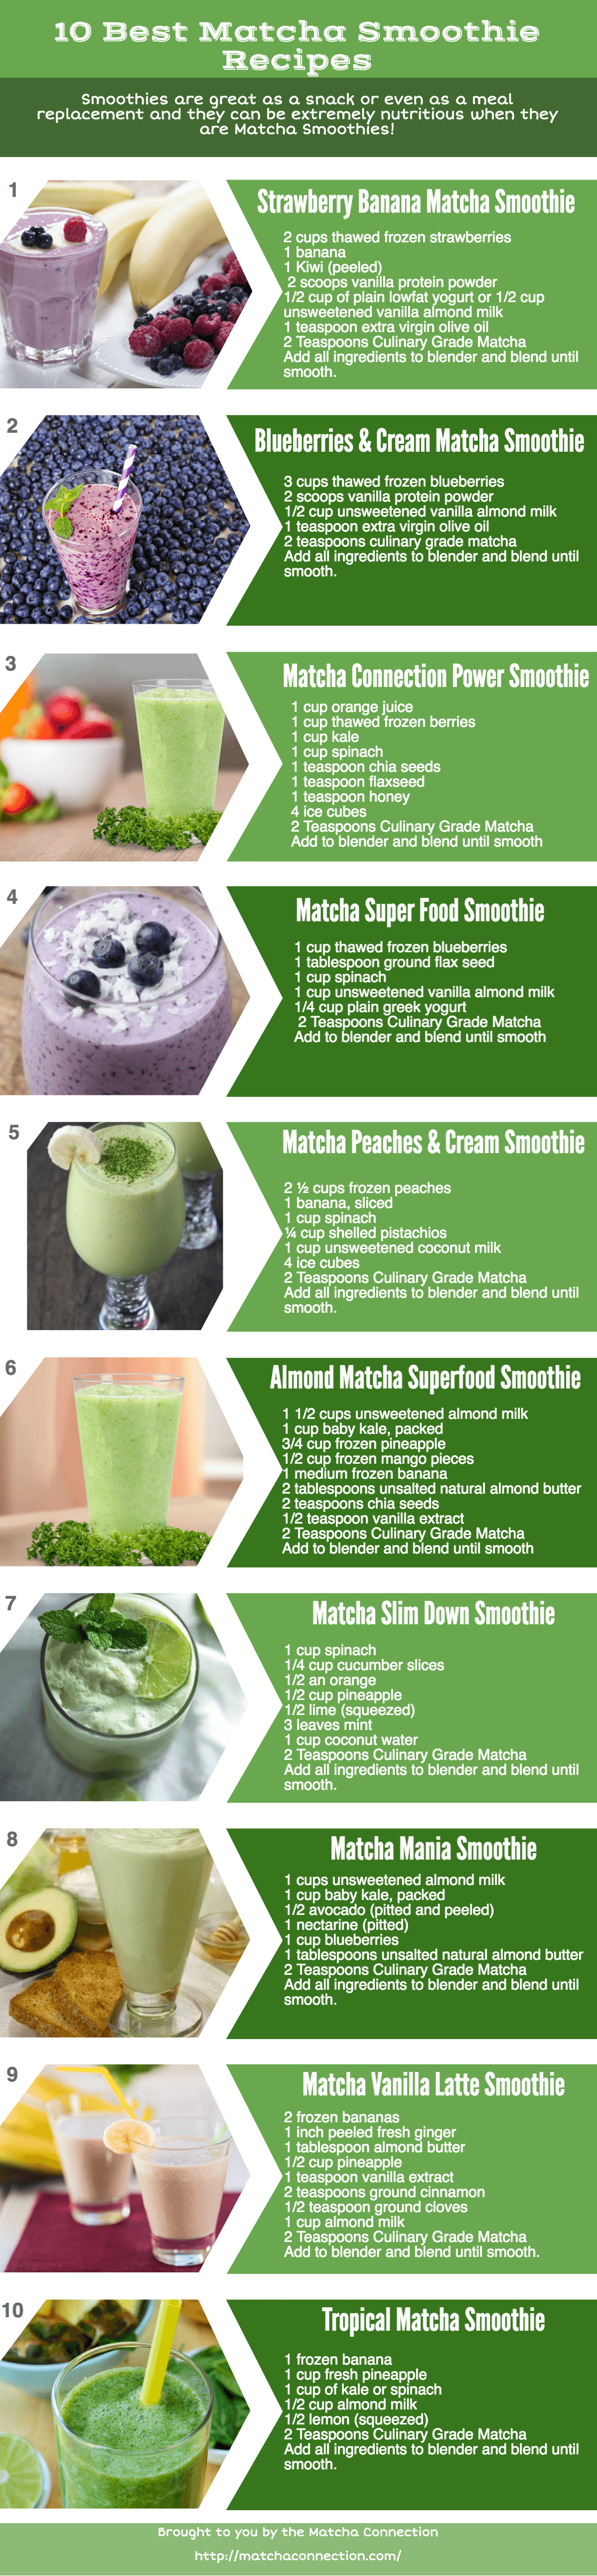 best matcha smoothies